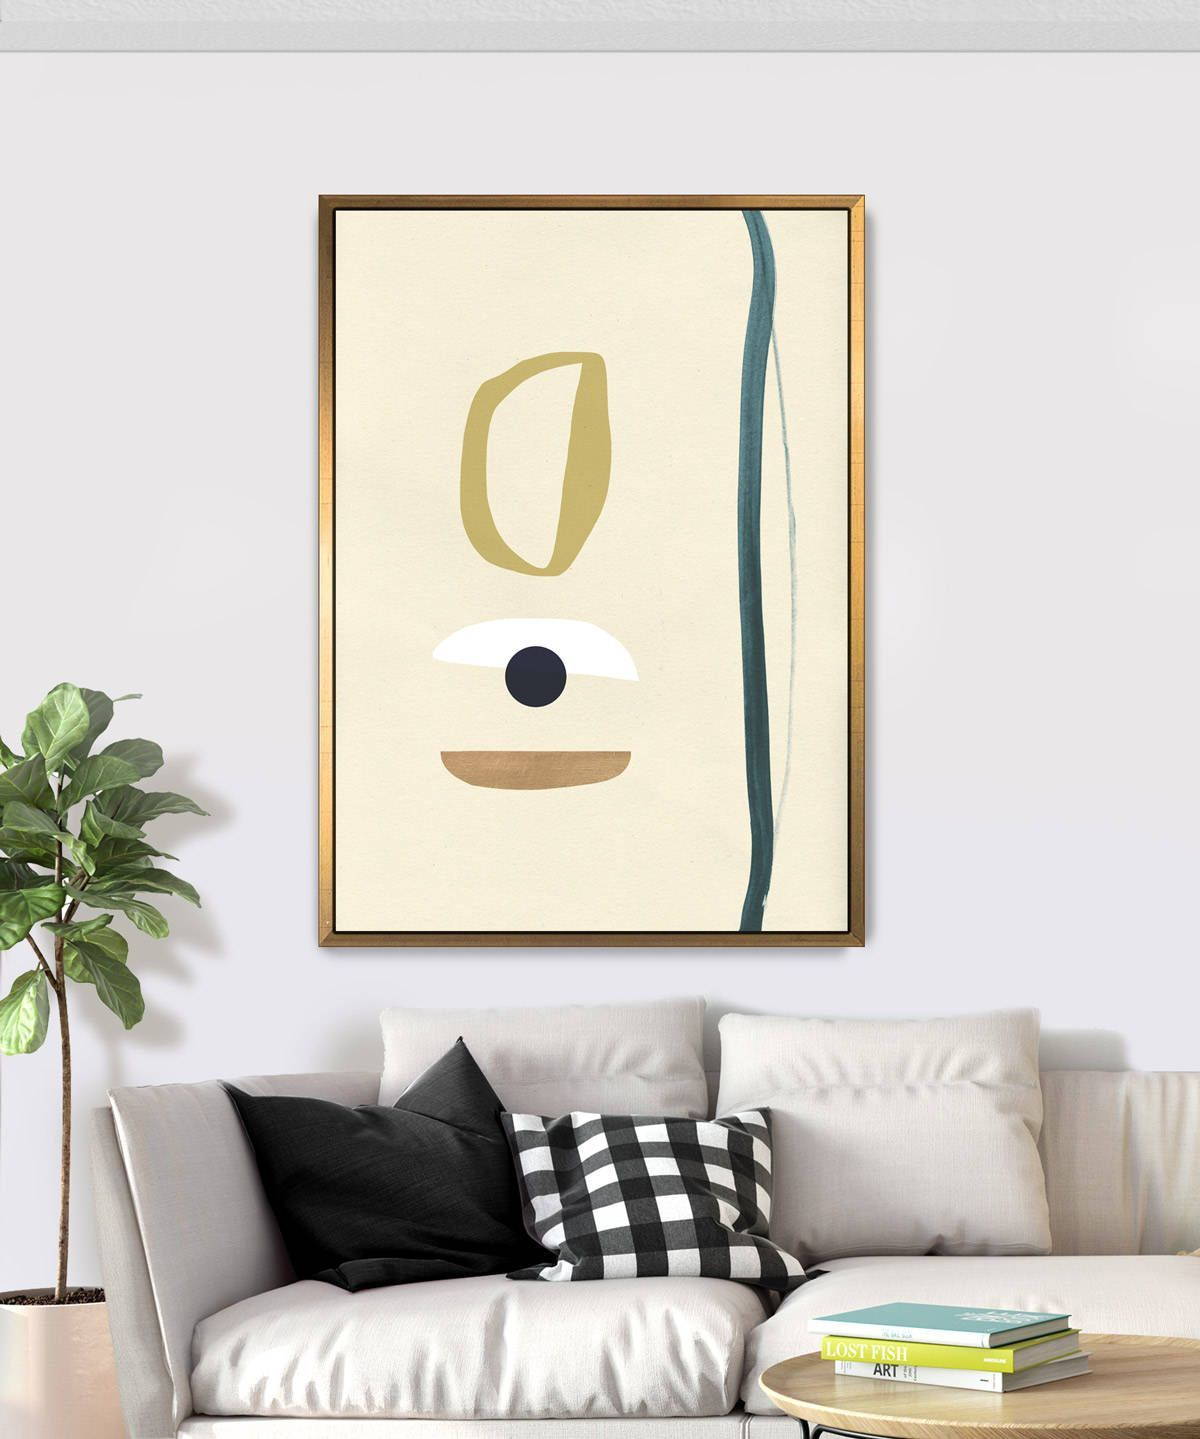 Abstract art printable wall print living room minimalist home also pin by decor design ideas on in rh pinterest